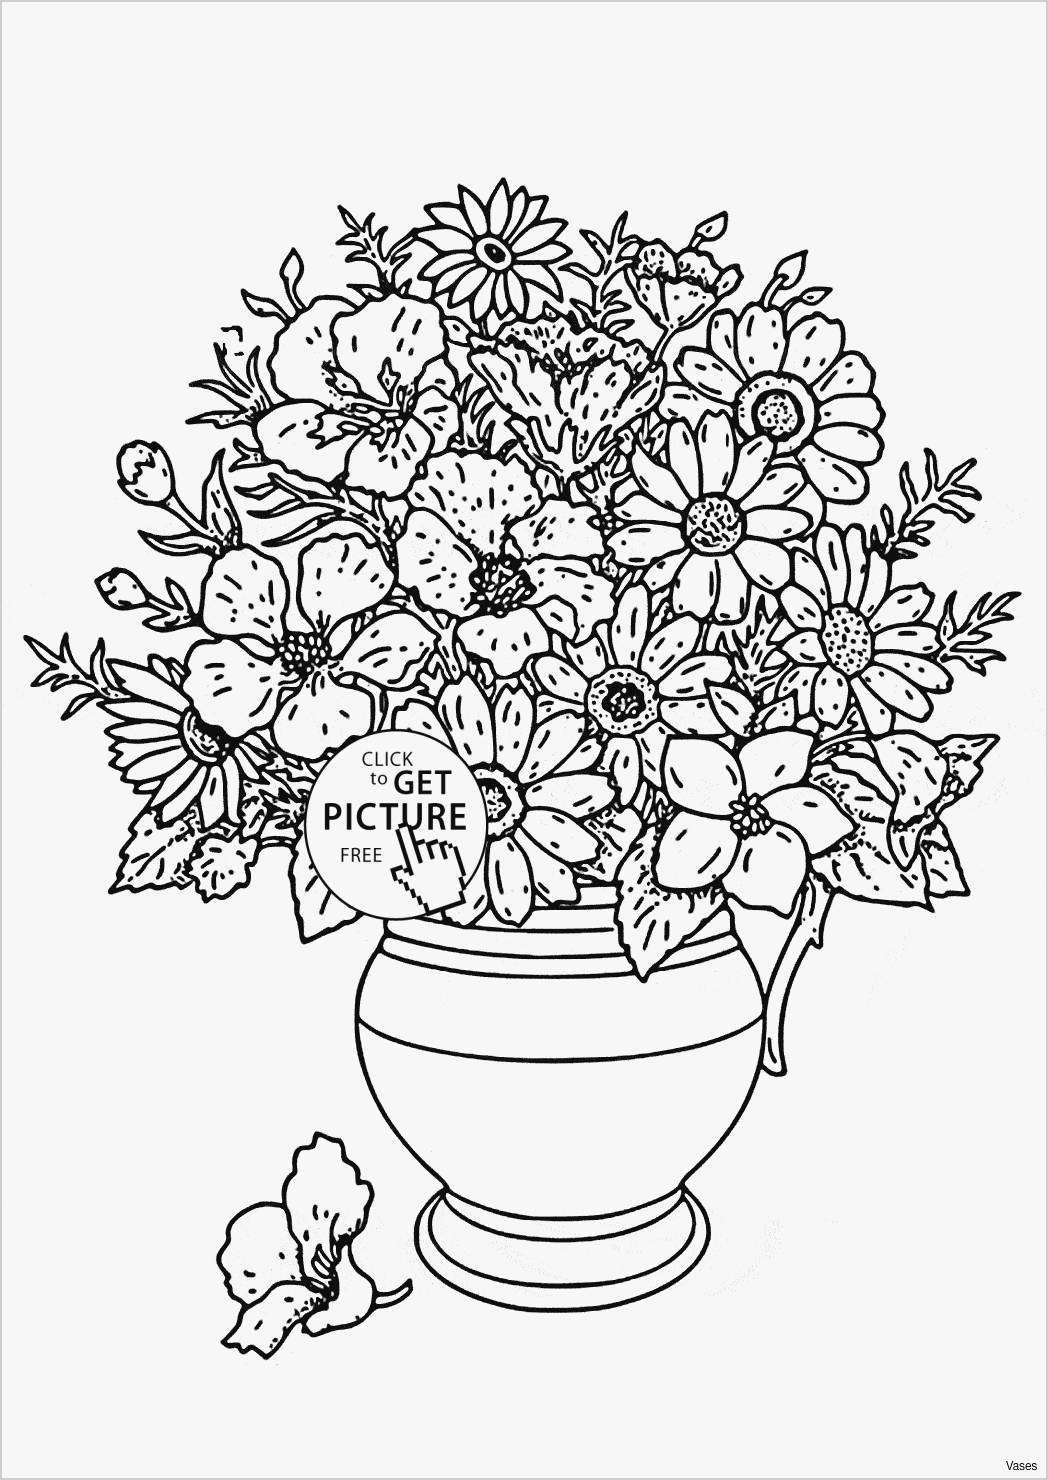 white vase with holes of vases flower vase coloring page pages flowers in a top i 0d and for coloring pictures of flowers vases flower vase coloring page pages flowers in a top i